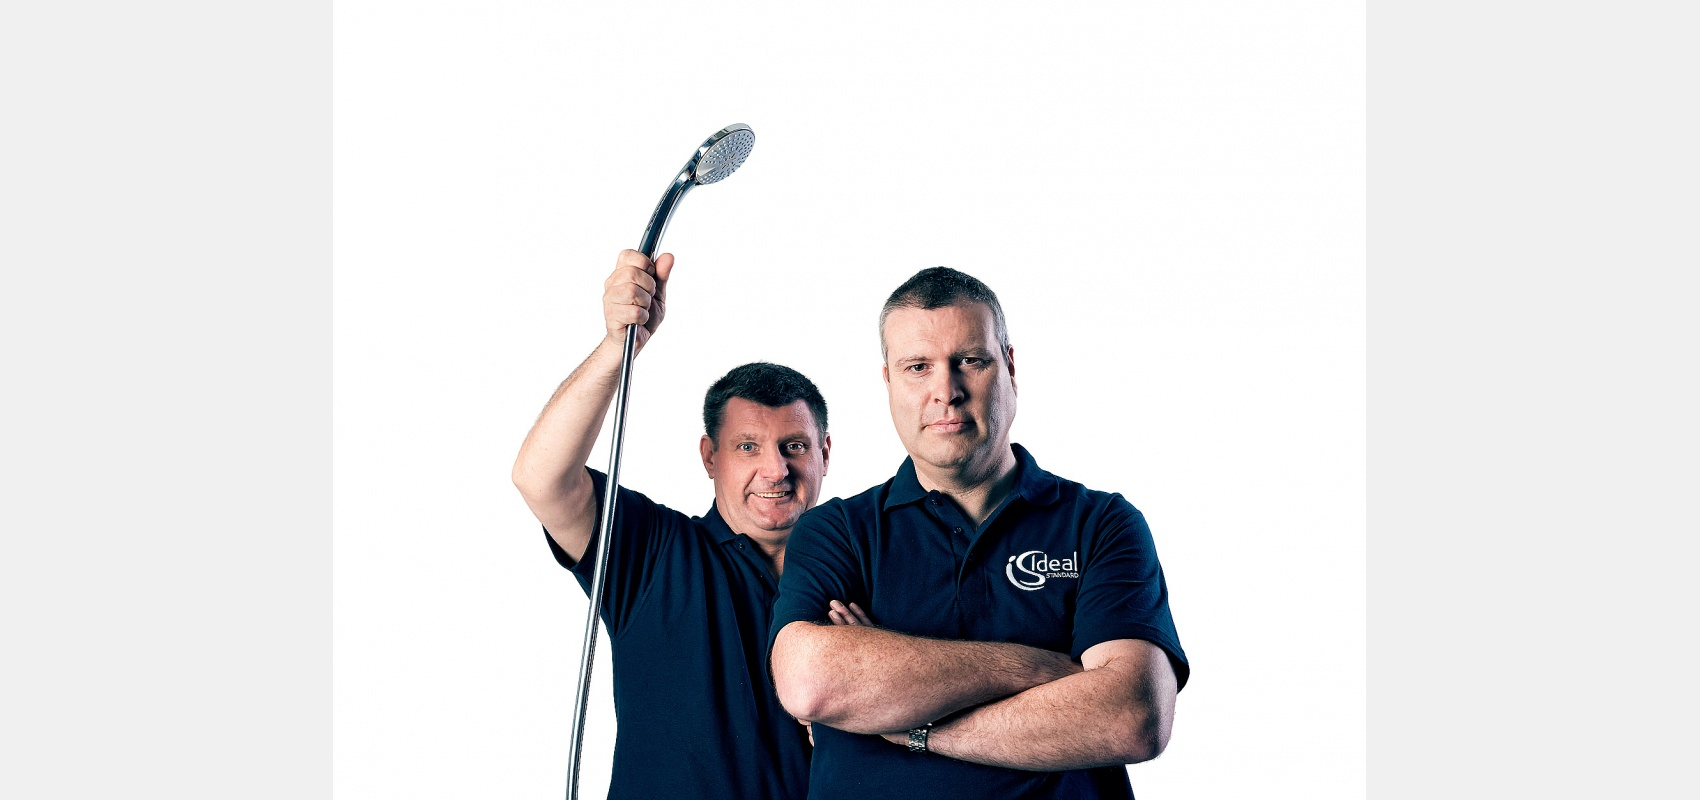 Studio portrait/real plumbers/Ideal Pro campaign.